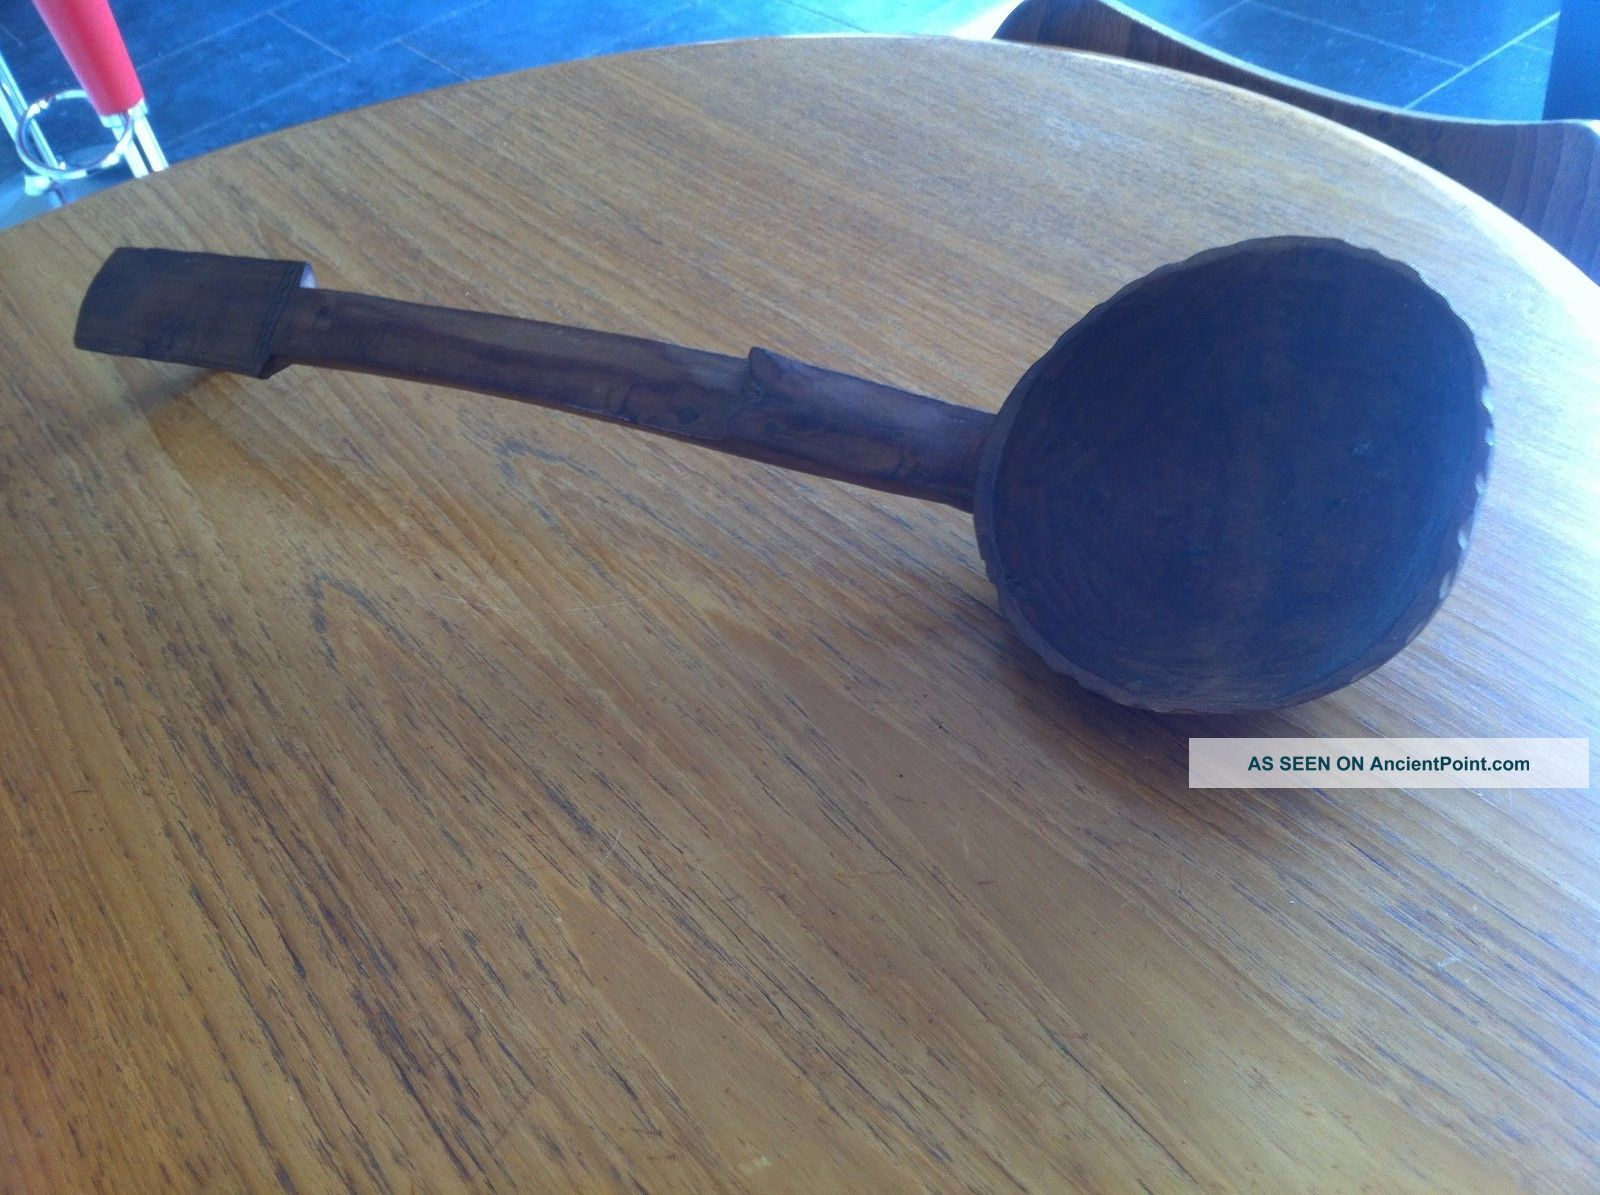 Fijian Cava Kava ? Ladle Very Large Hand Carved Wood Vintage African? Pacific Islands & Oceania photo